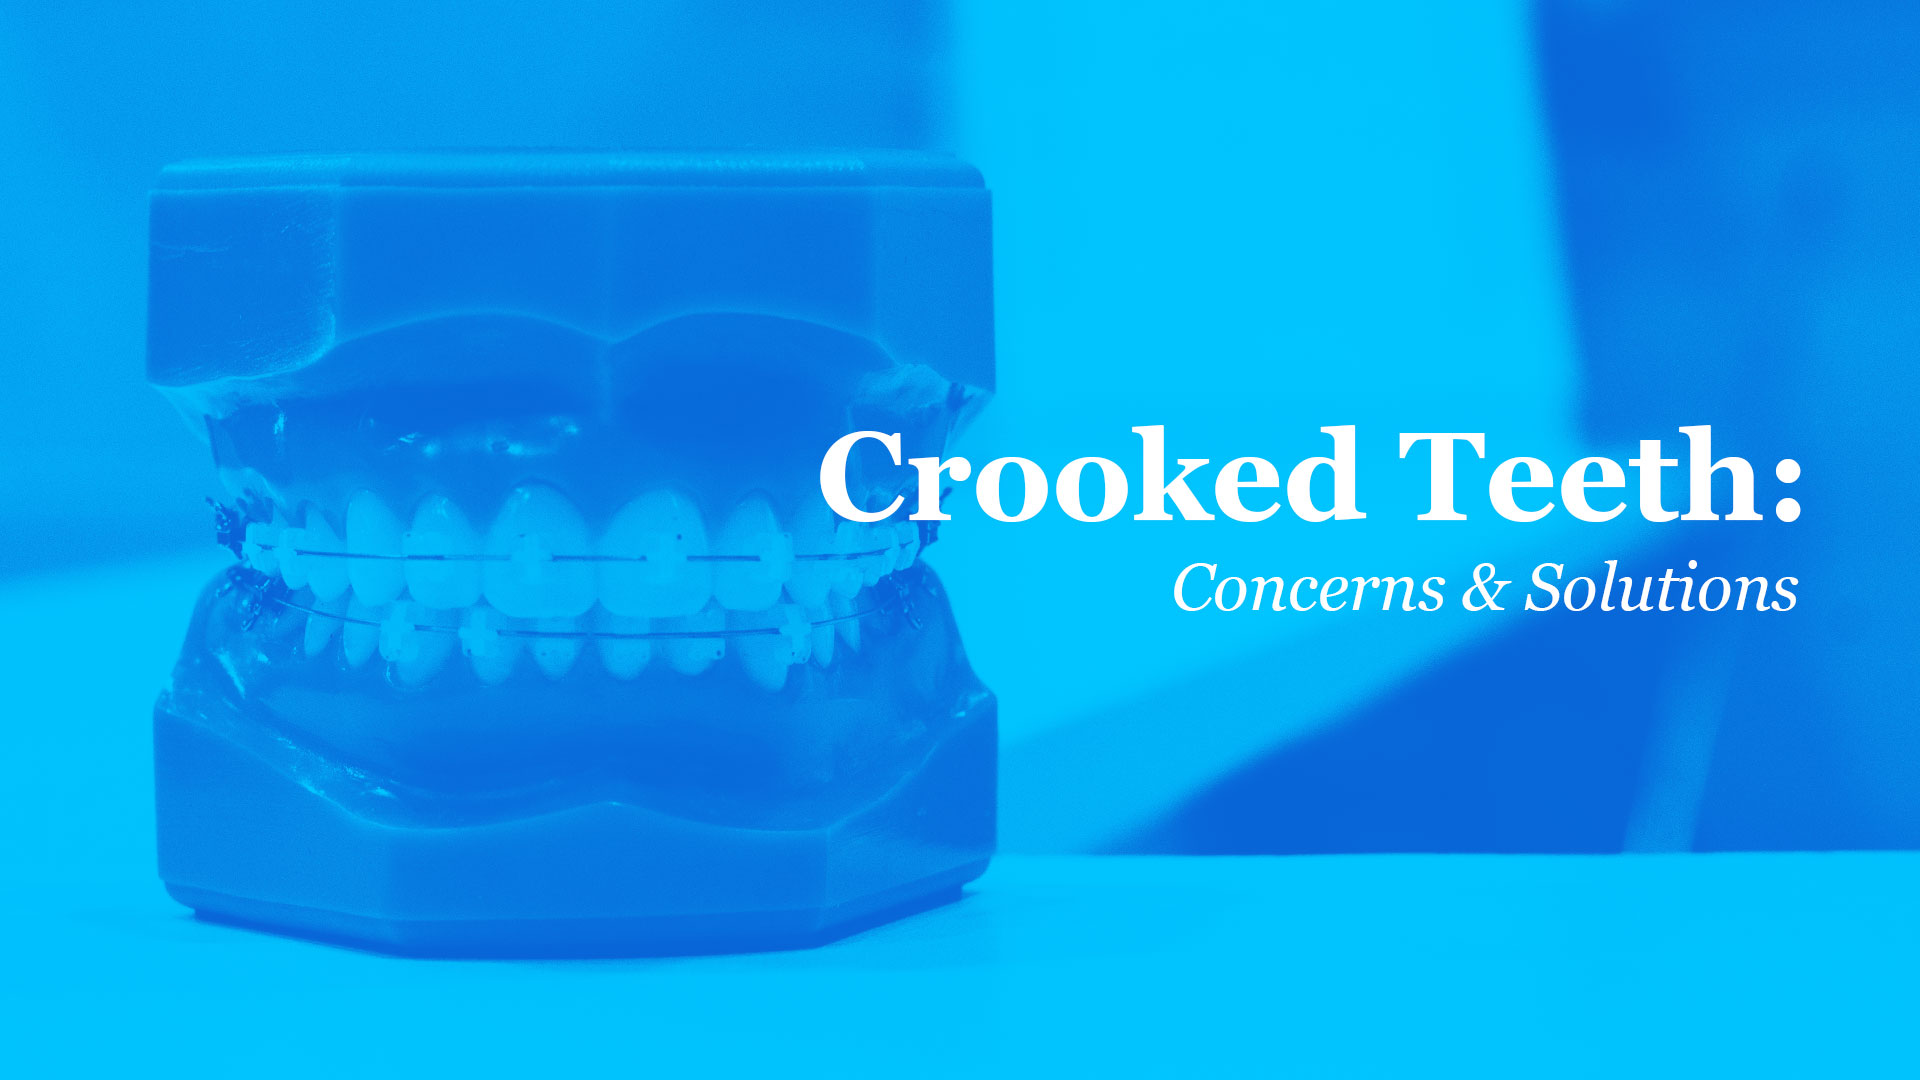 Crooked-Teeth-Concerns-Feat-Image